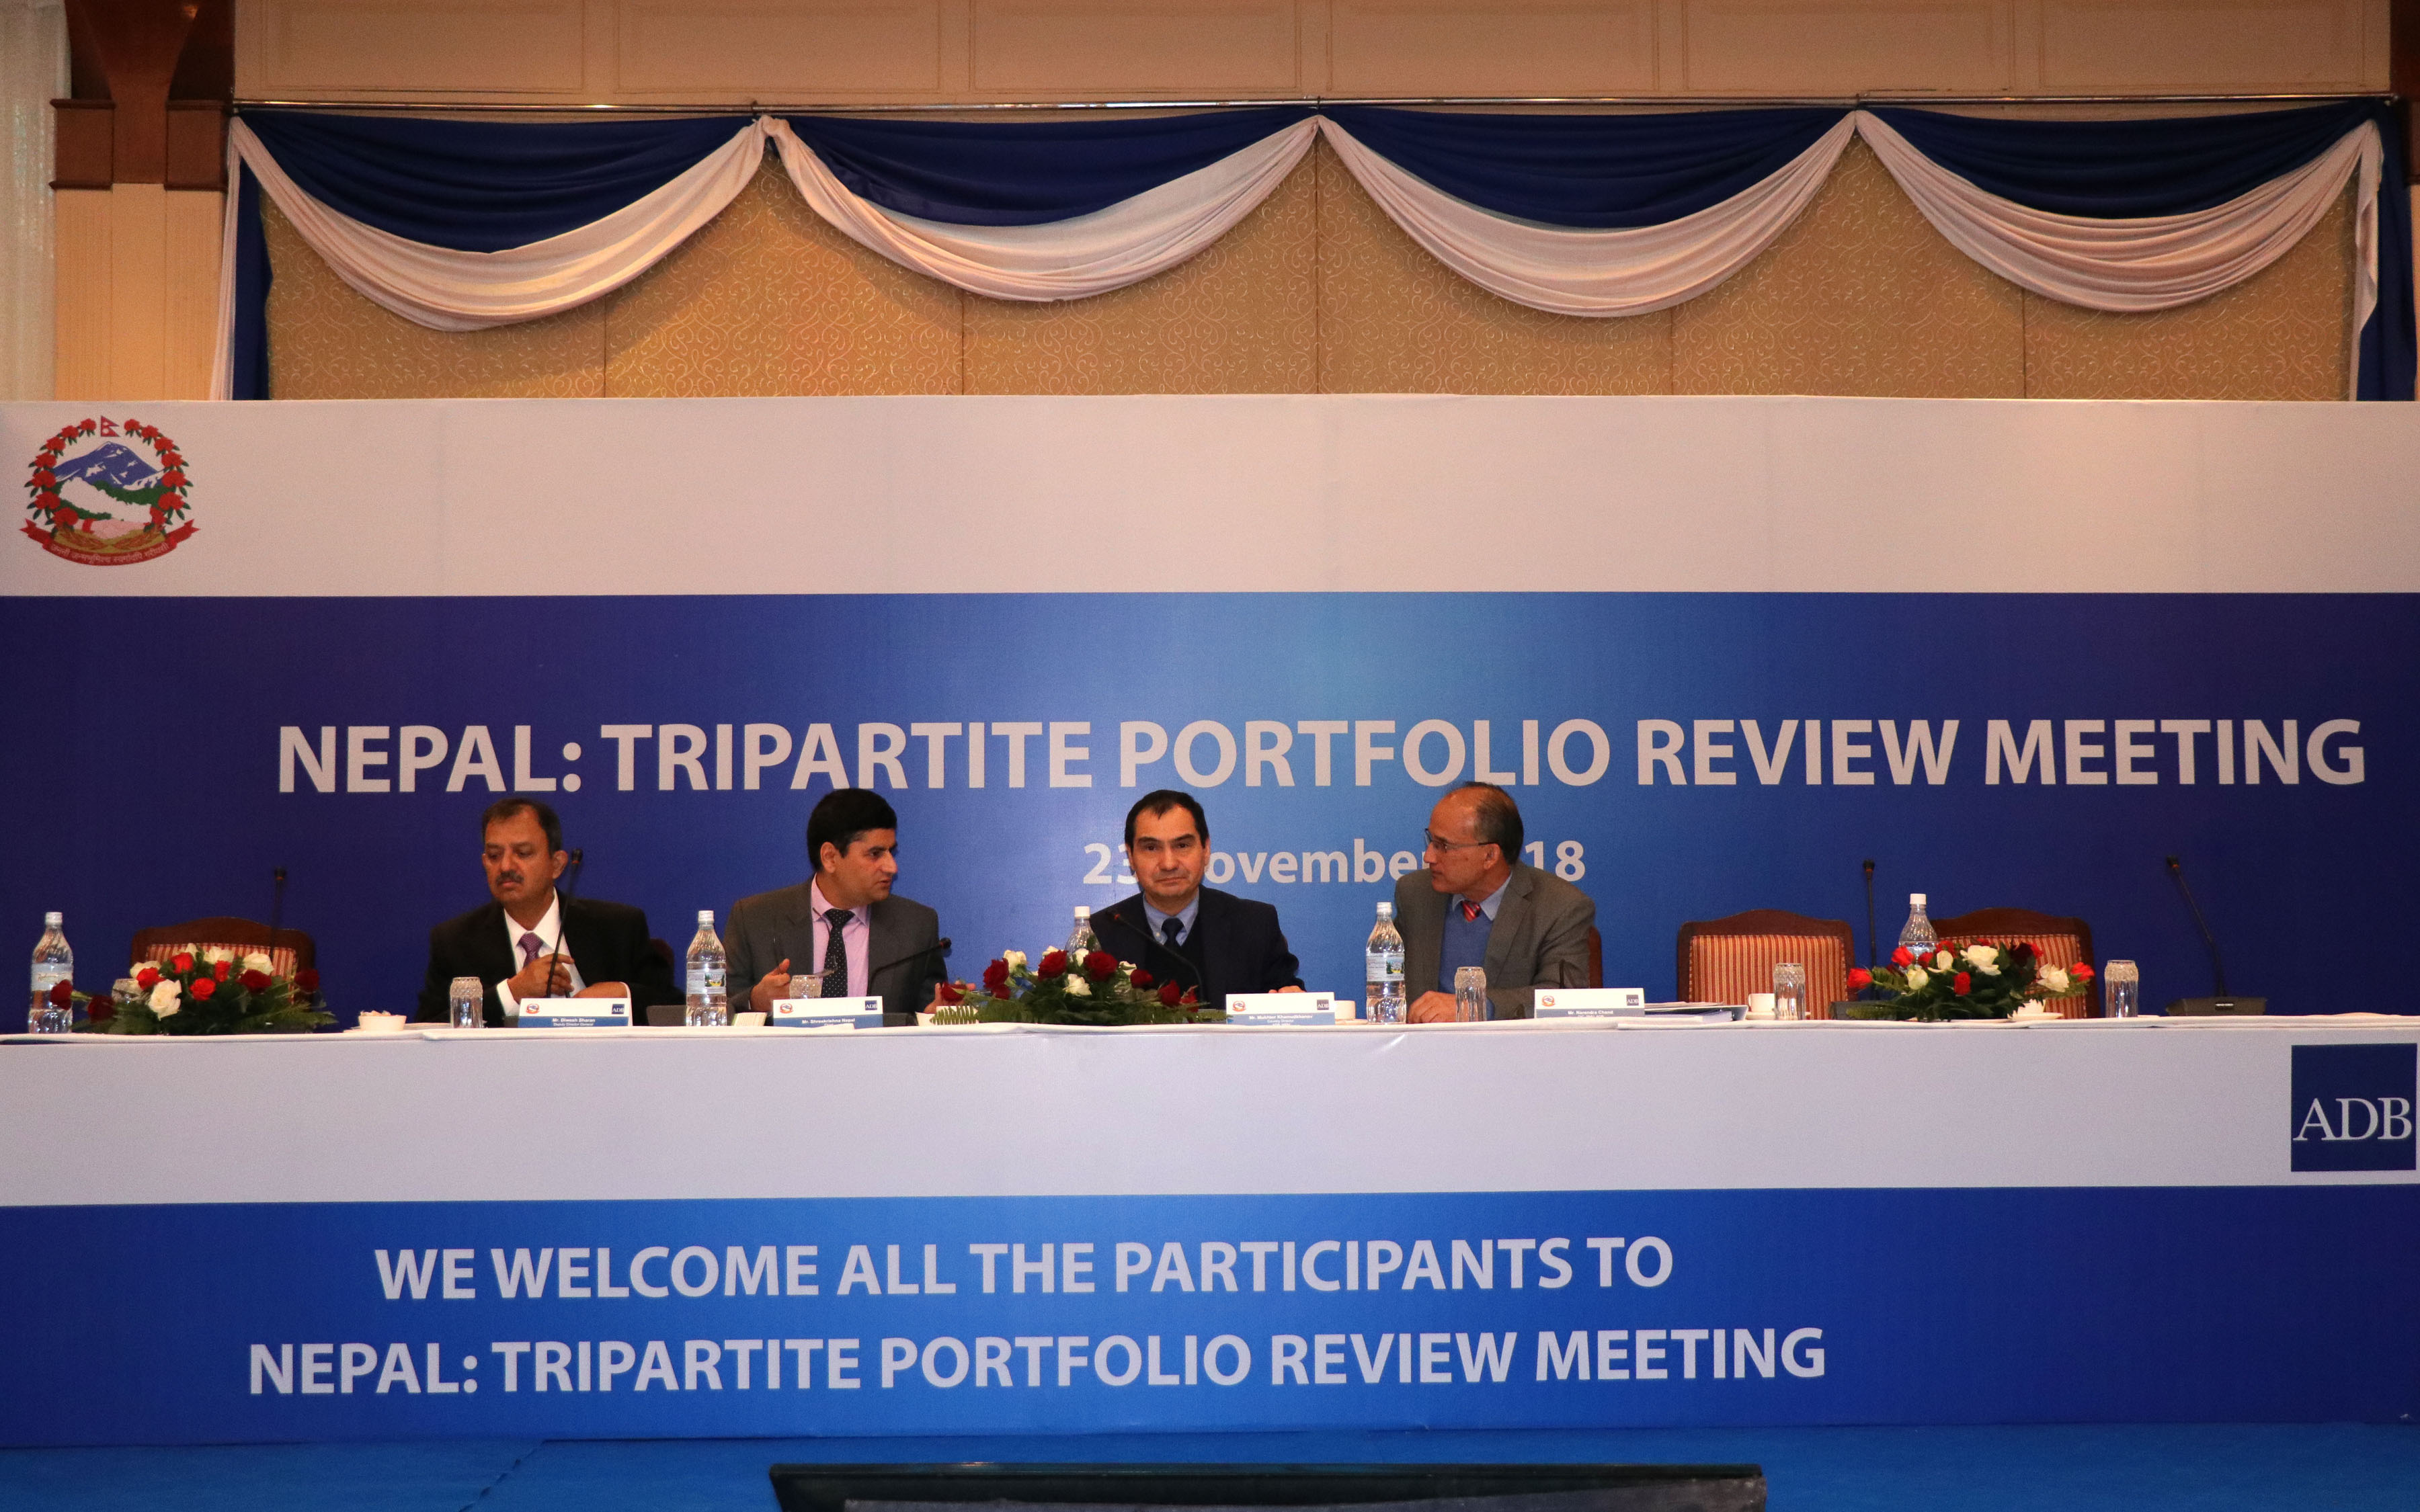 Officials from ADB and Nepal government at a Tripartite Portfolio Review Meeting of Asian Development Bank held in Kathmandu, on November 23, 2018. Photo: RSS